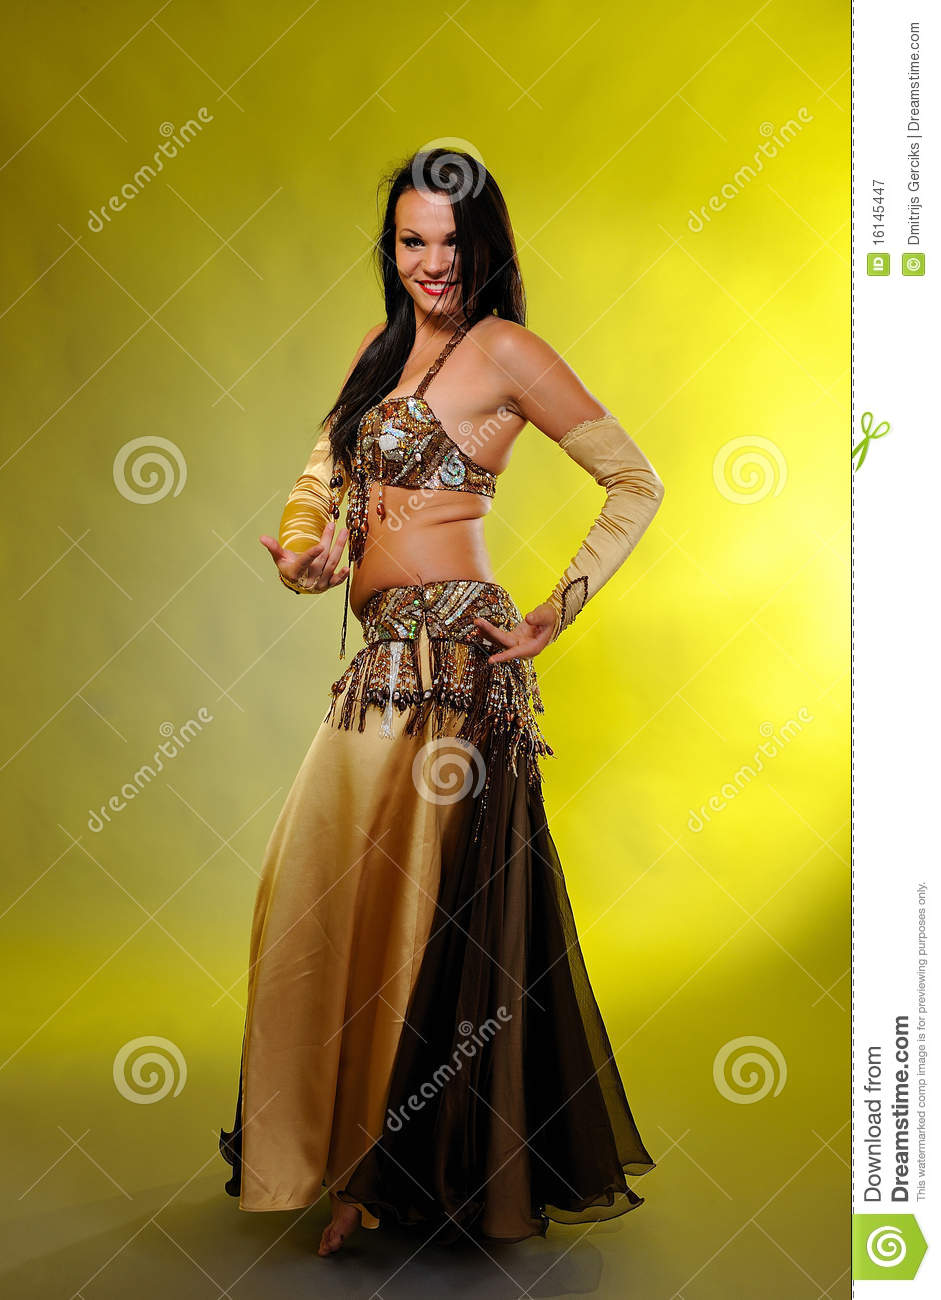 Beautiful Dancer Woman In Bellydance Costume